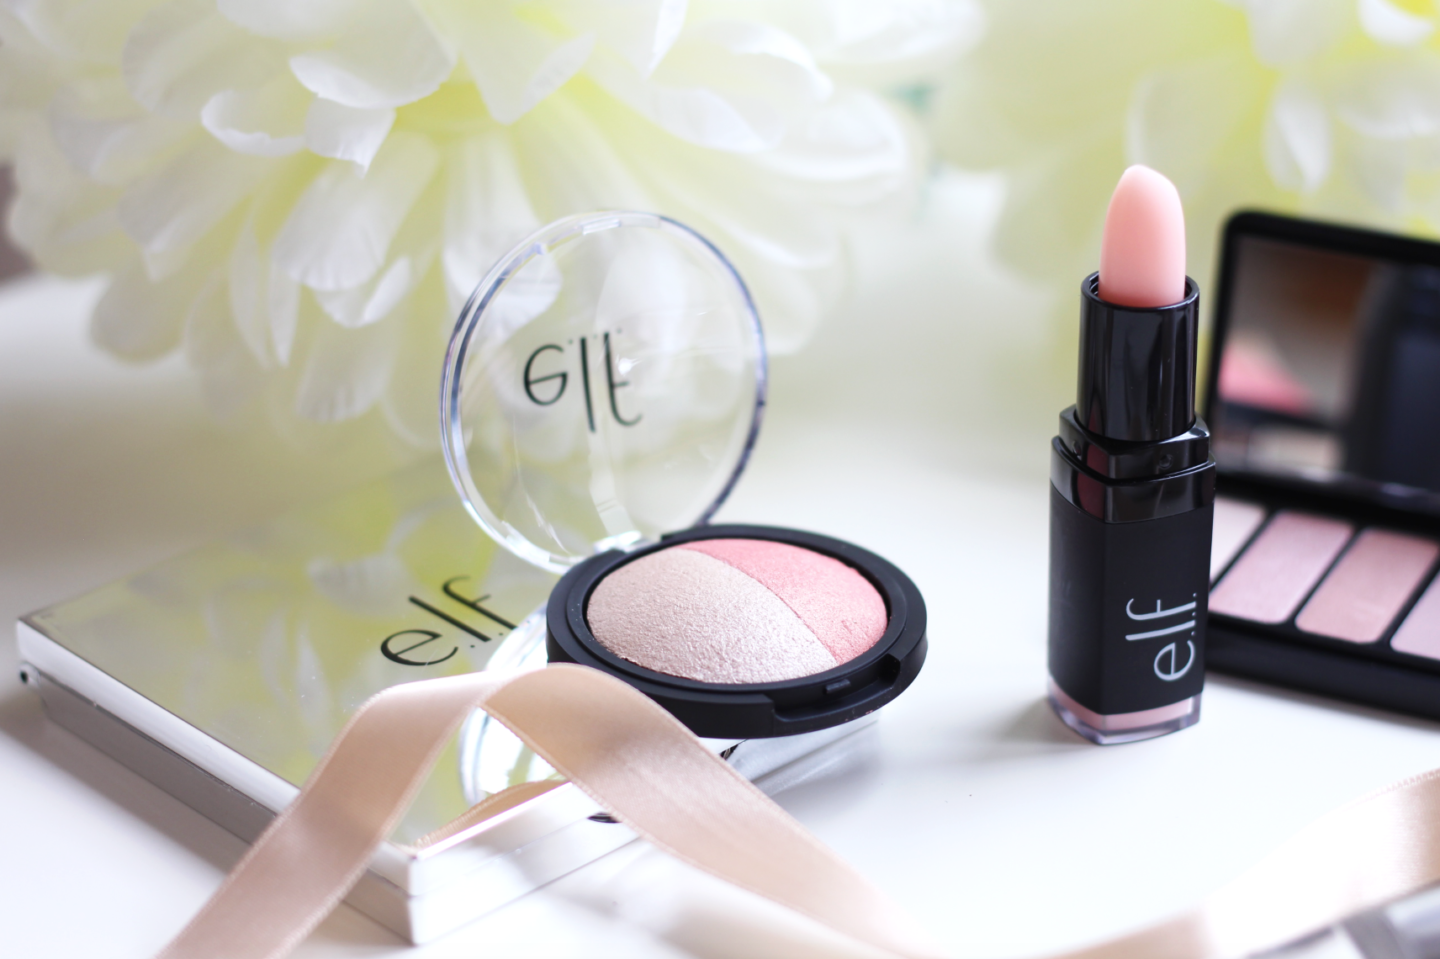 E.L.F. COSMETICS HAS ARRIVED IN THE UK